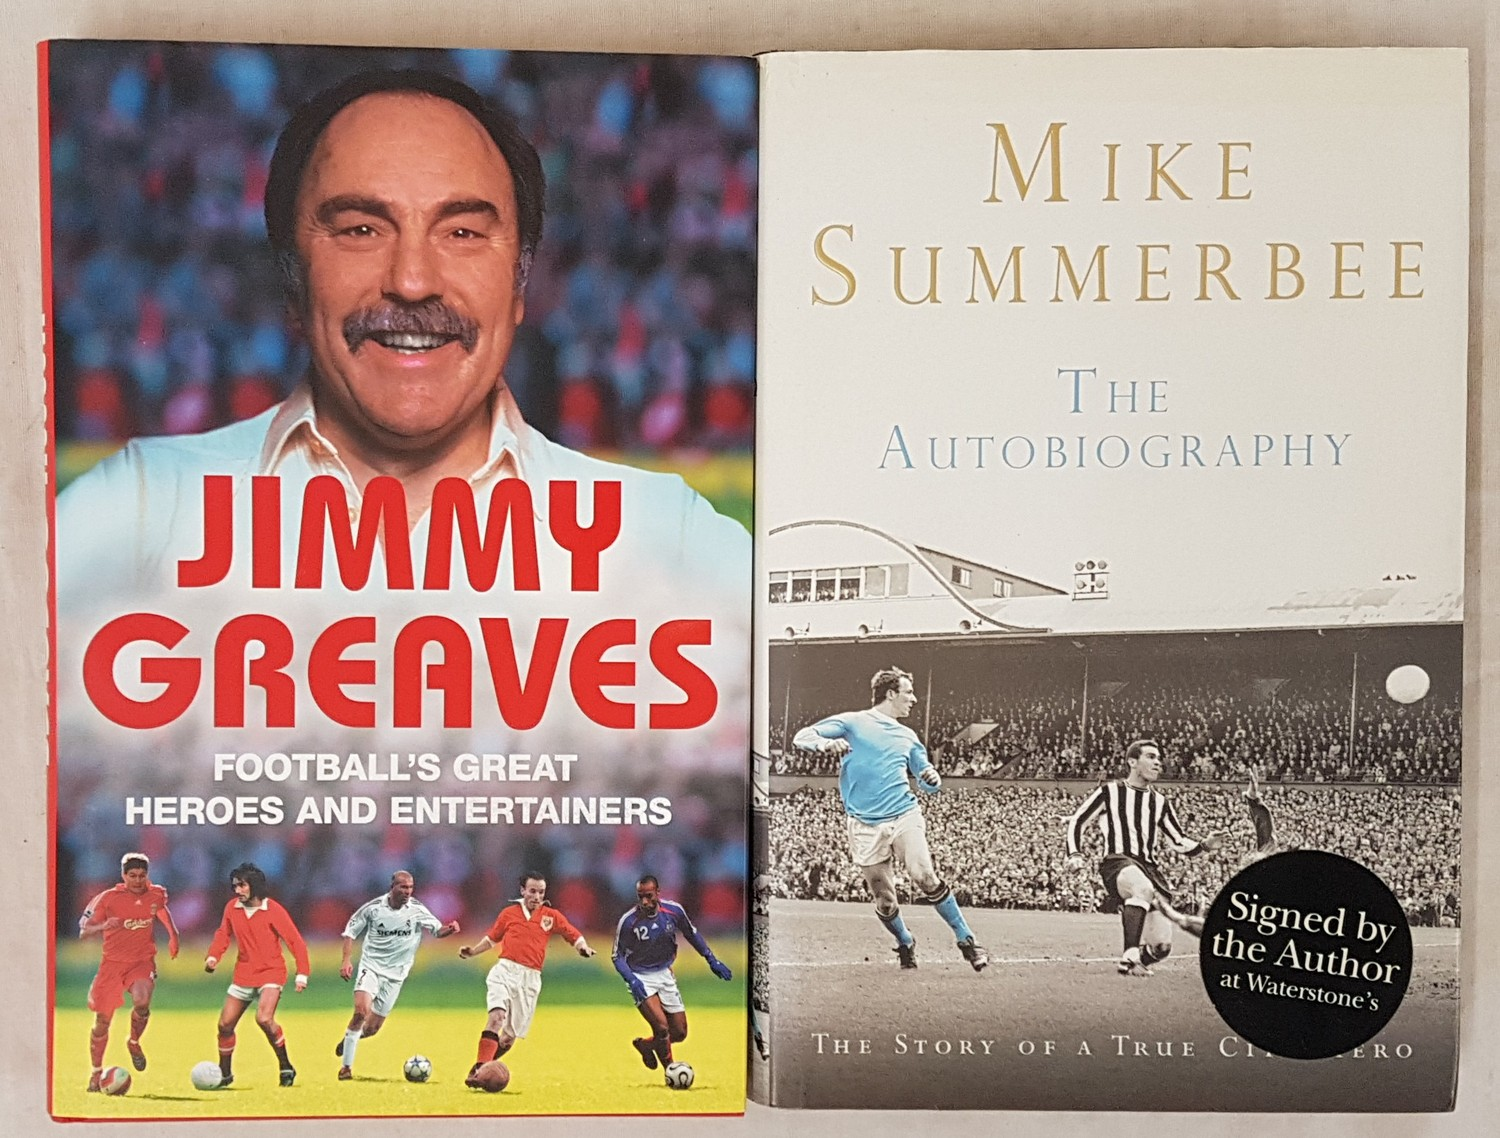 Football's Great Heroes and Entertainers, Jimmy Greaves, 1st Edition, 1st Printing, 2007, Hodder &